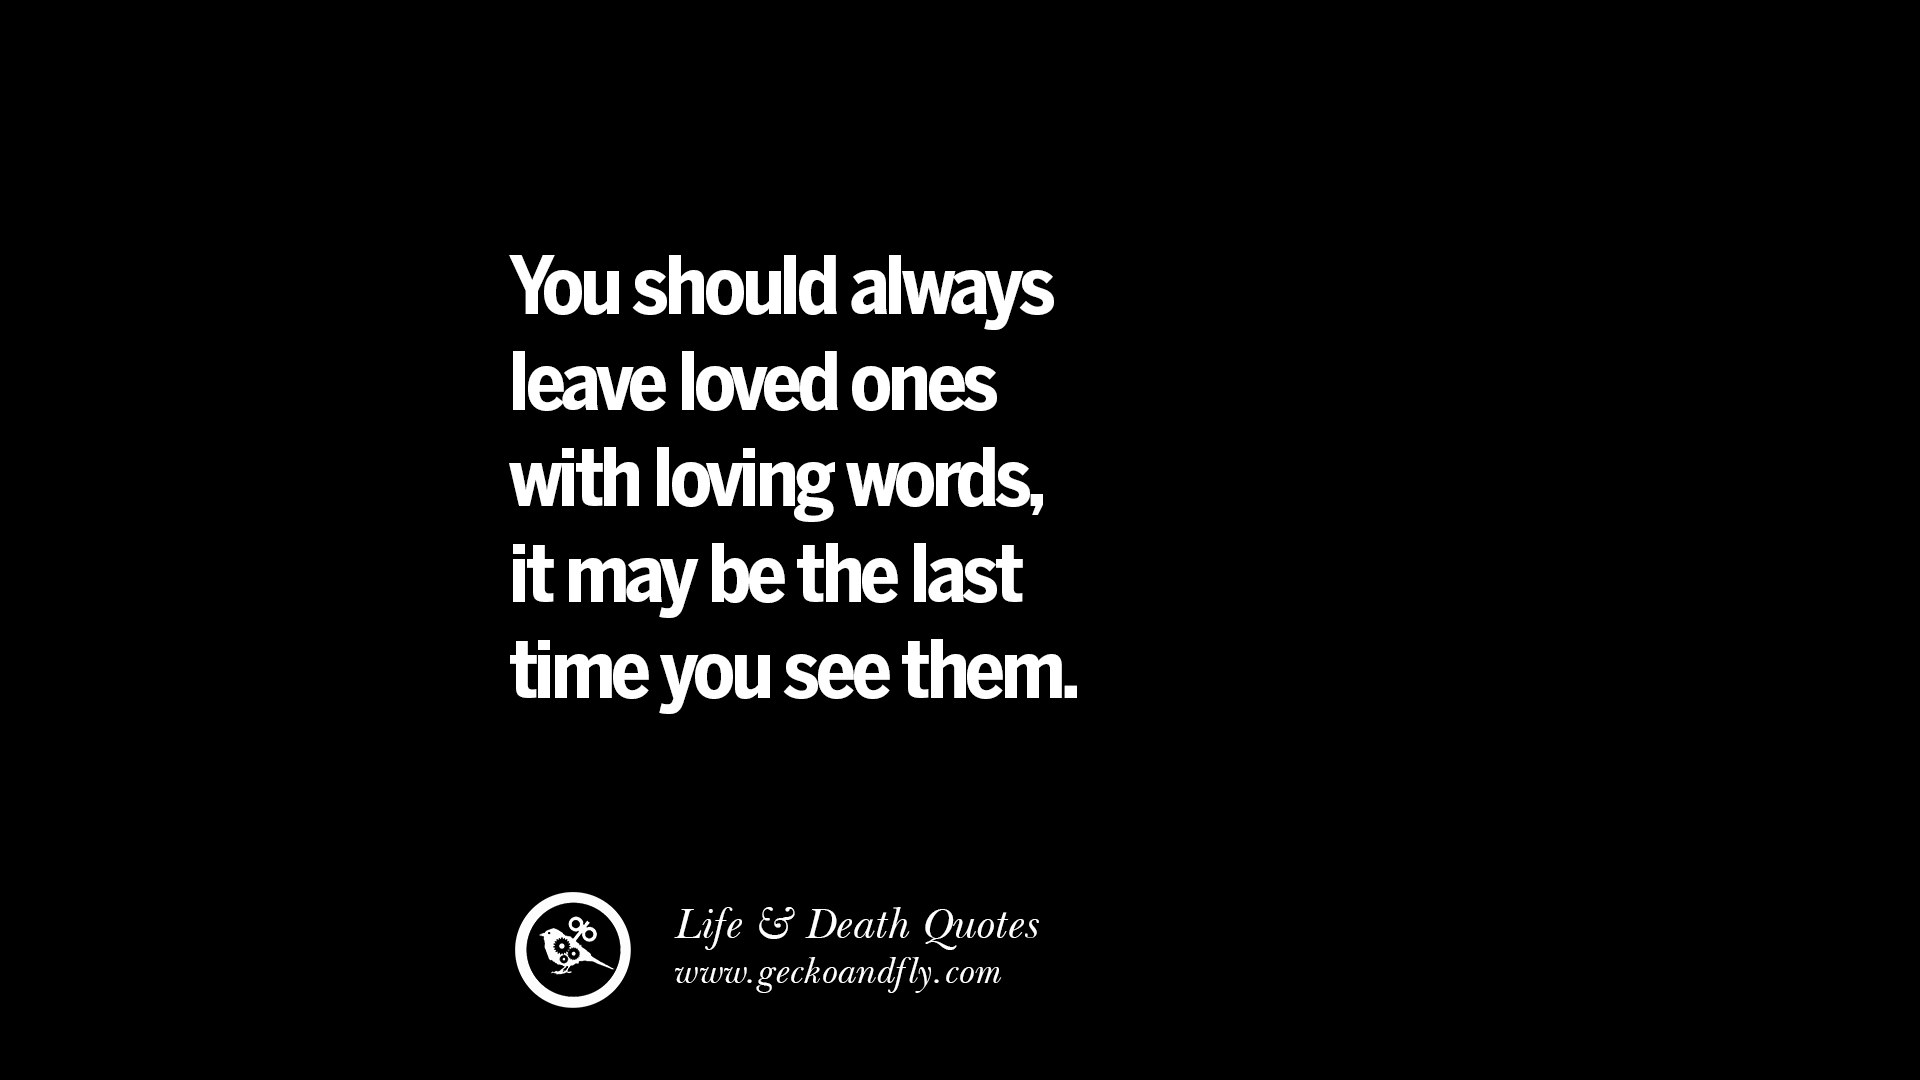 You should always leave loved ones with loving words it may be the last time you see them